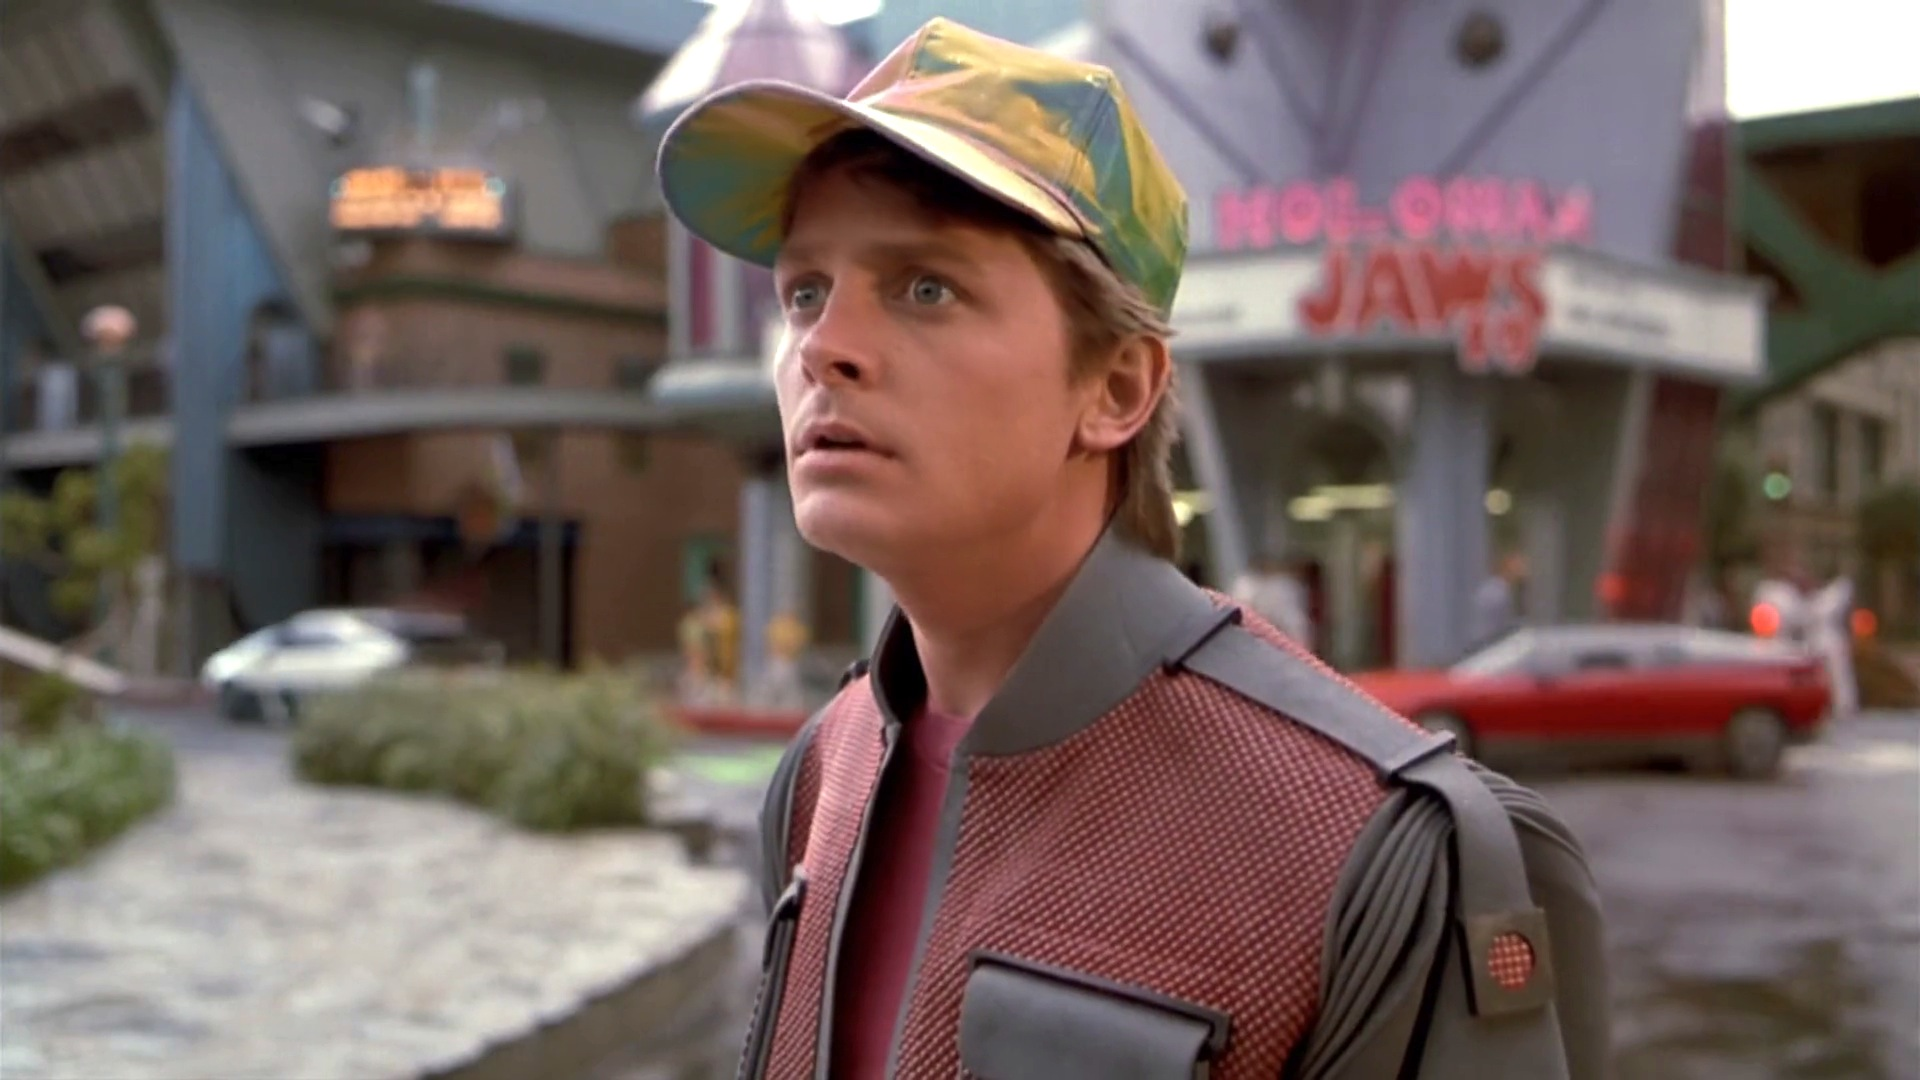 What Back To The Future Ii S Vision Of Got Wrong